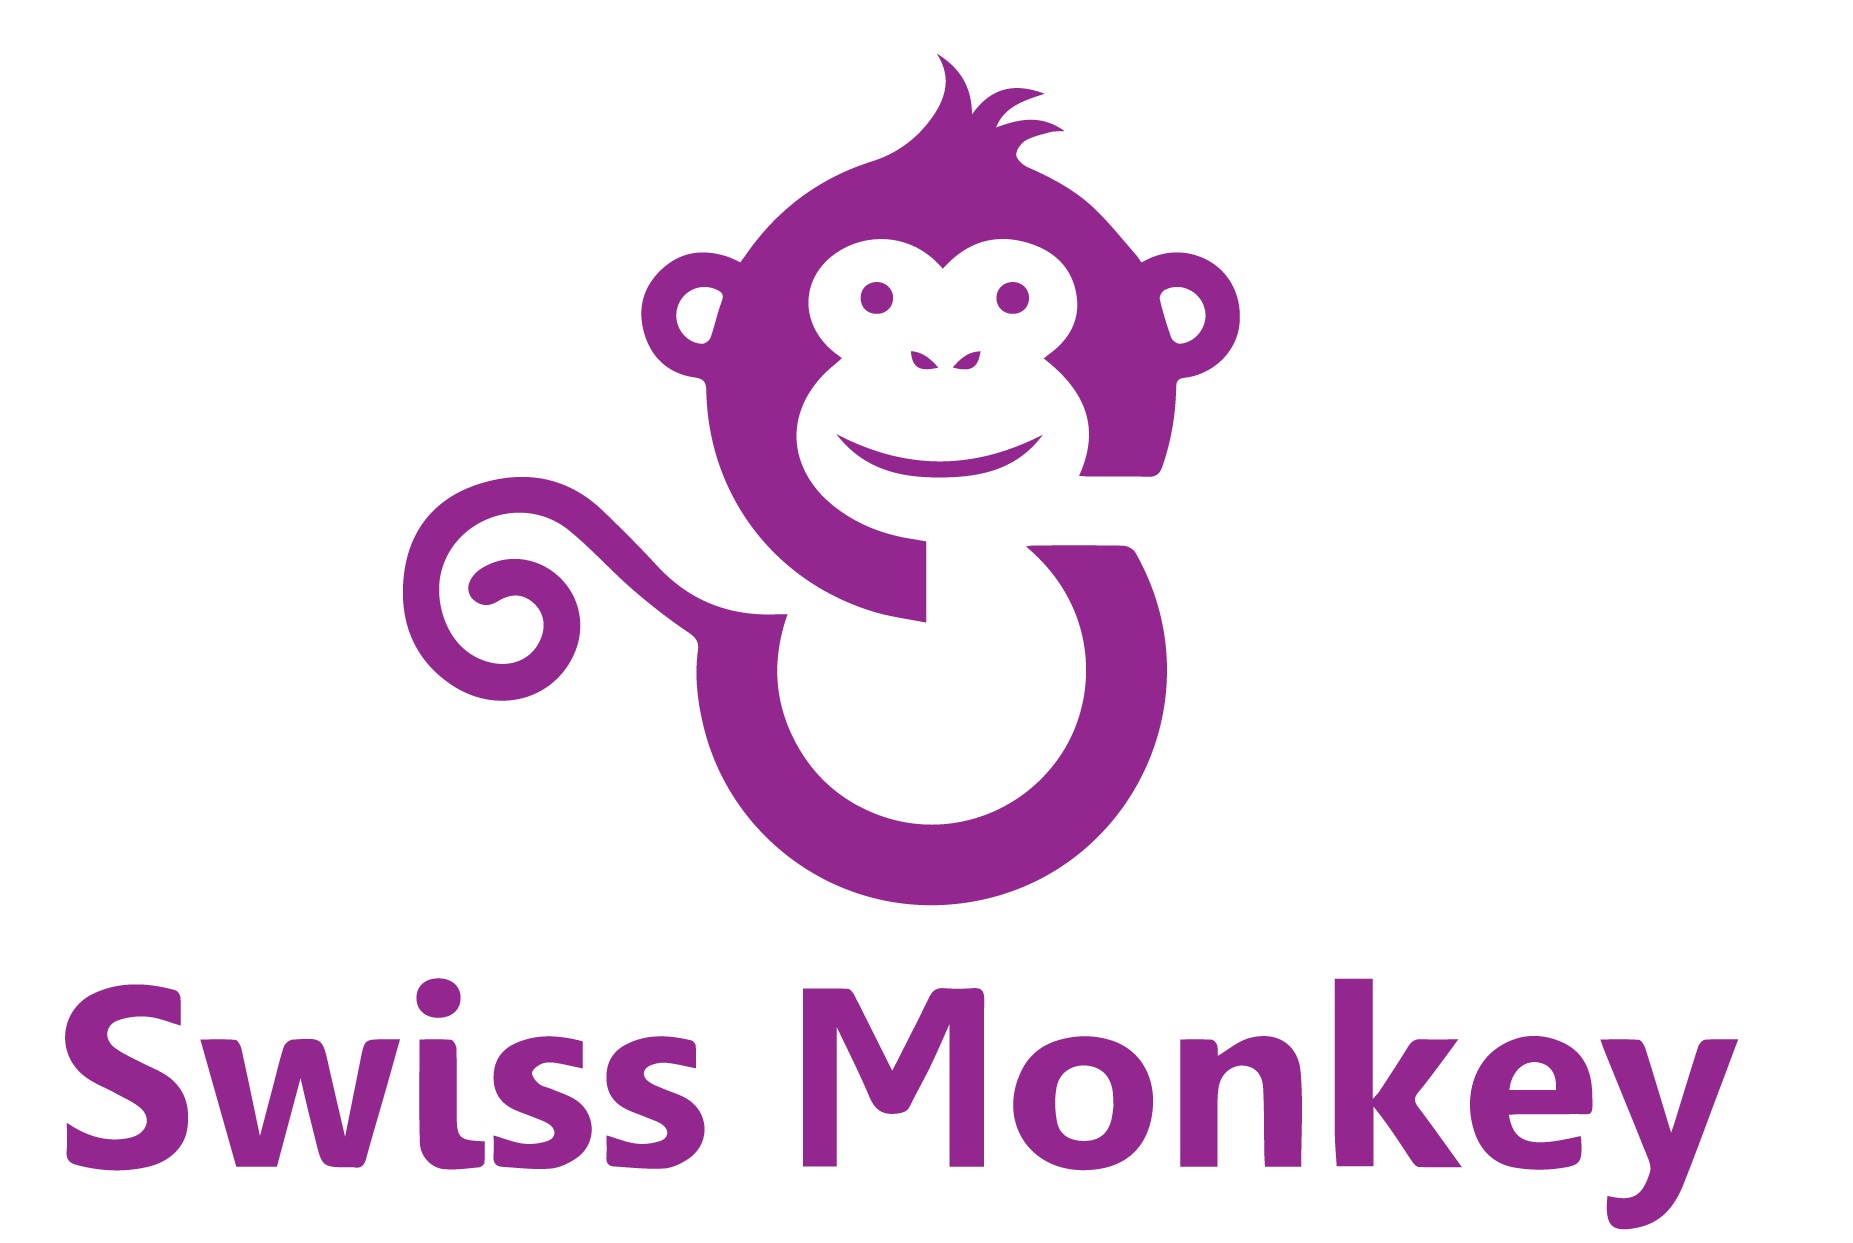 Swiss Monkey